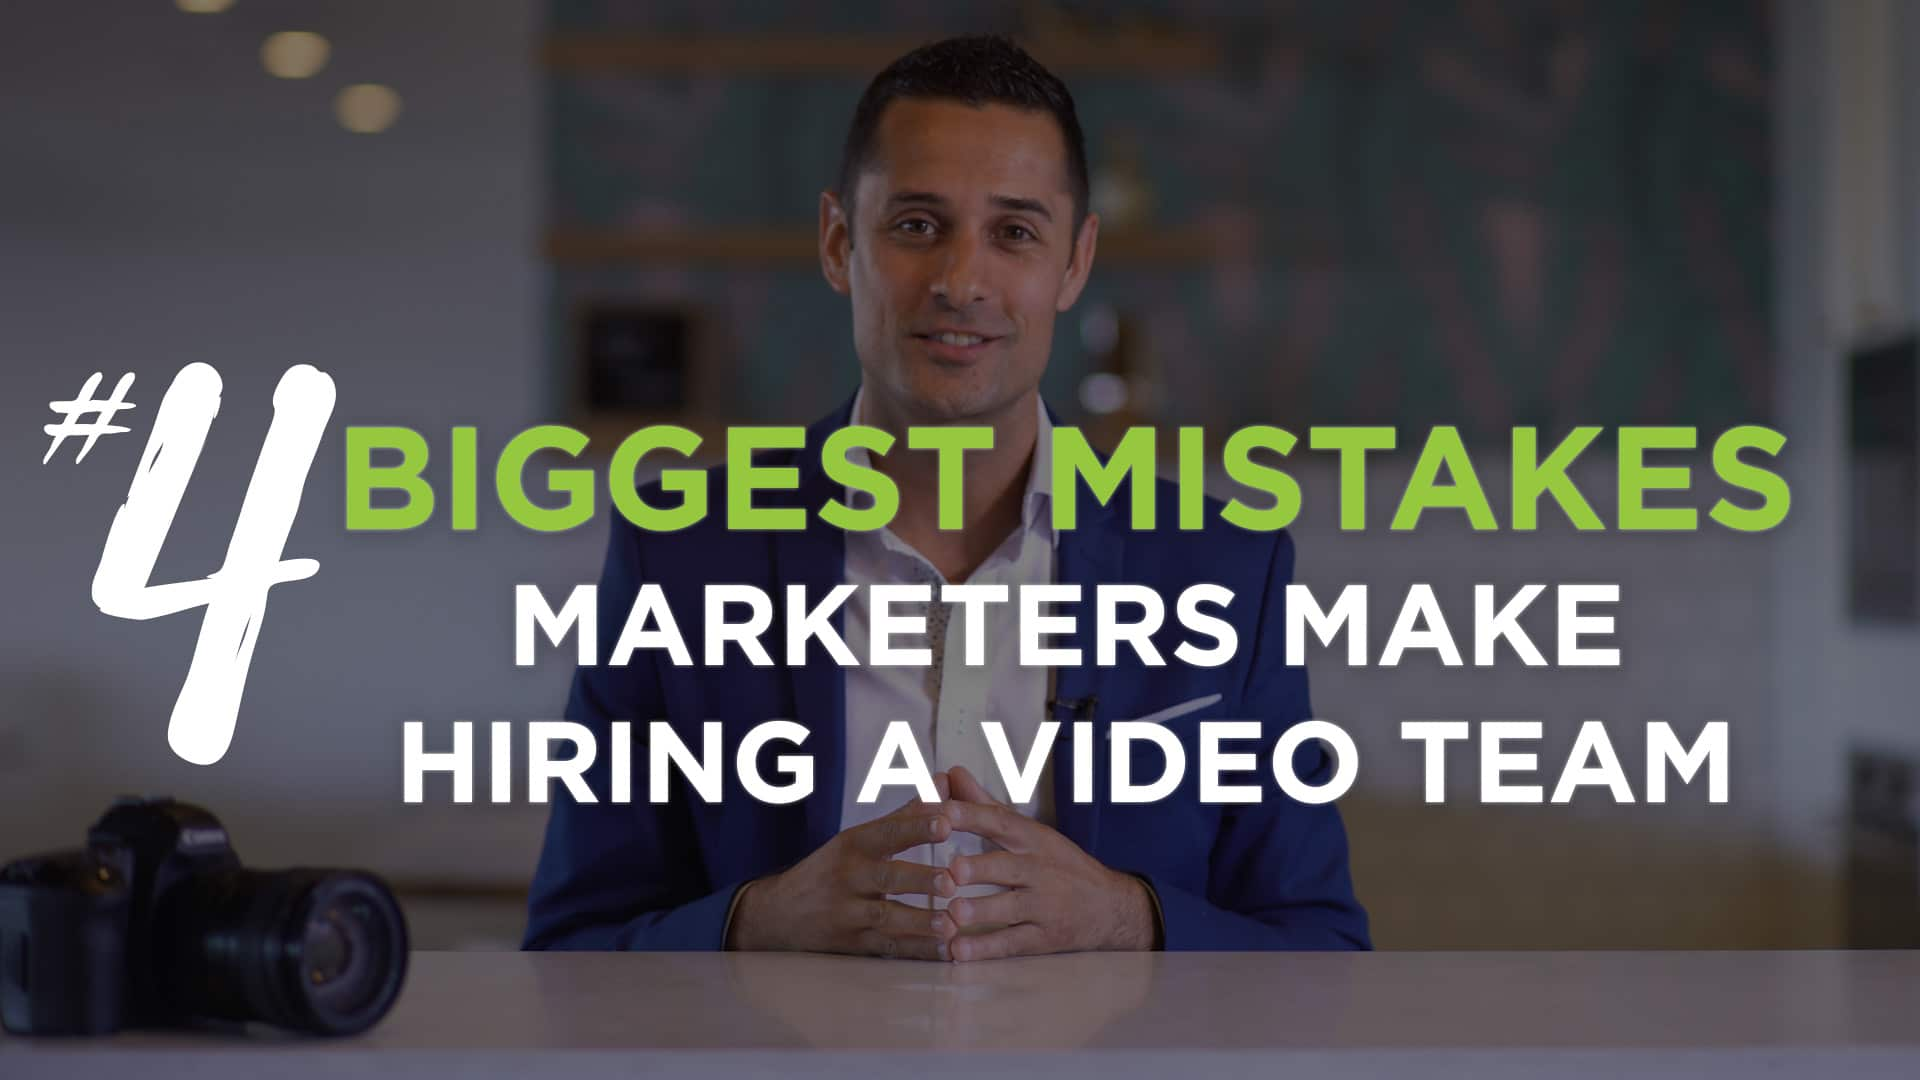 A person sitting at a table. Text saying: 4 Biggest Mistakes Marketers Make Hiring A Video Team